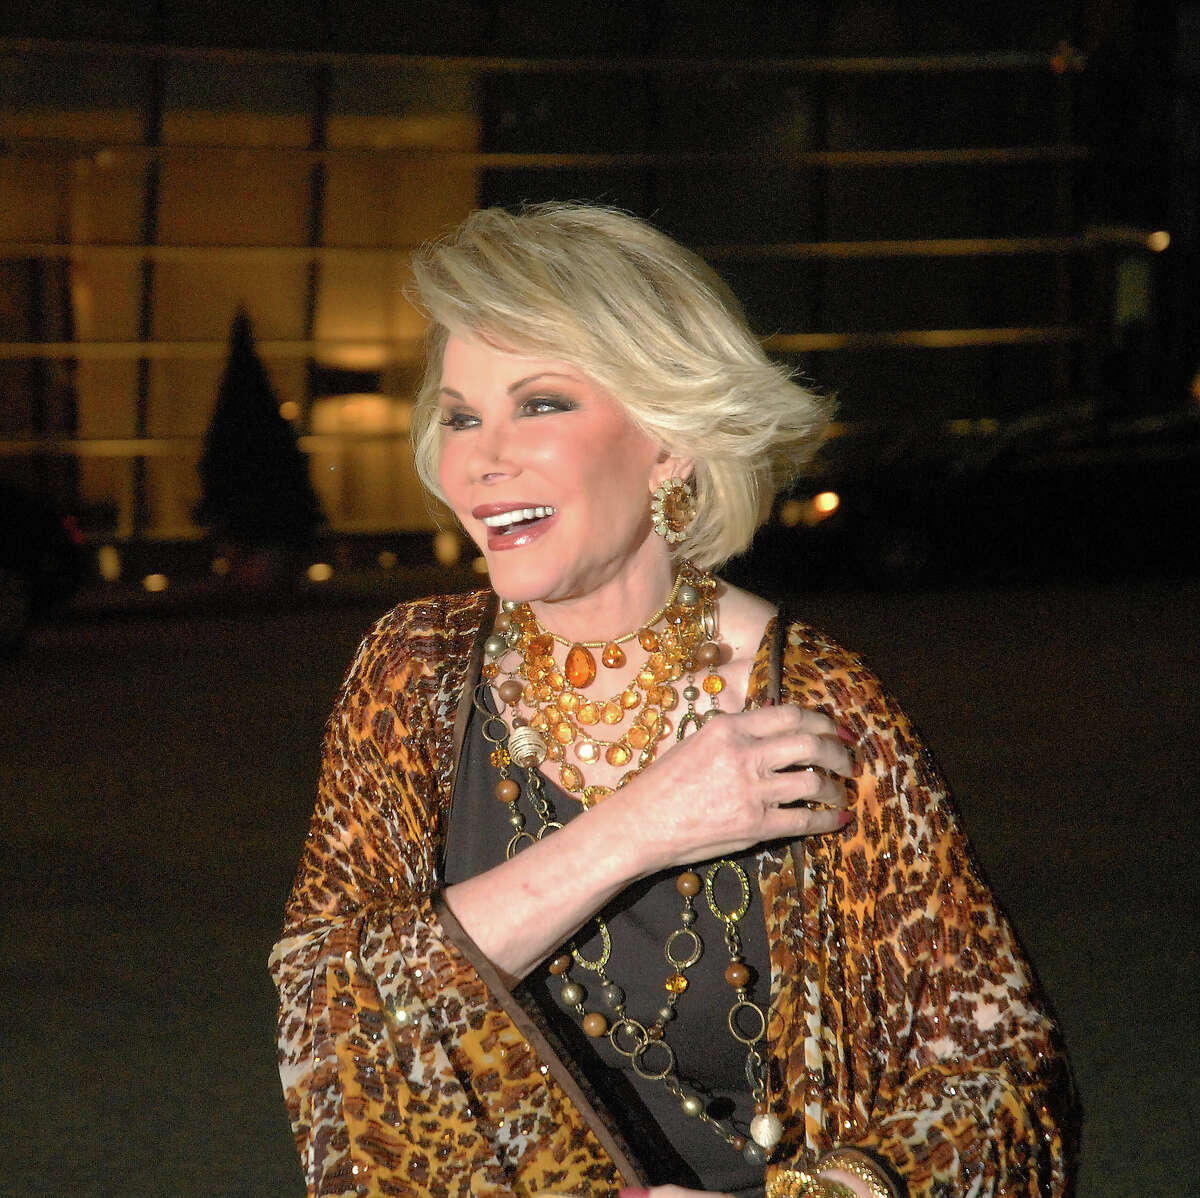 Joan Rivers attends the wedding of Howard Stern and Beth Ostrosky at Le Cirque on October 3, 2008 in New York City.